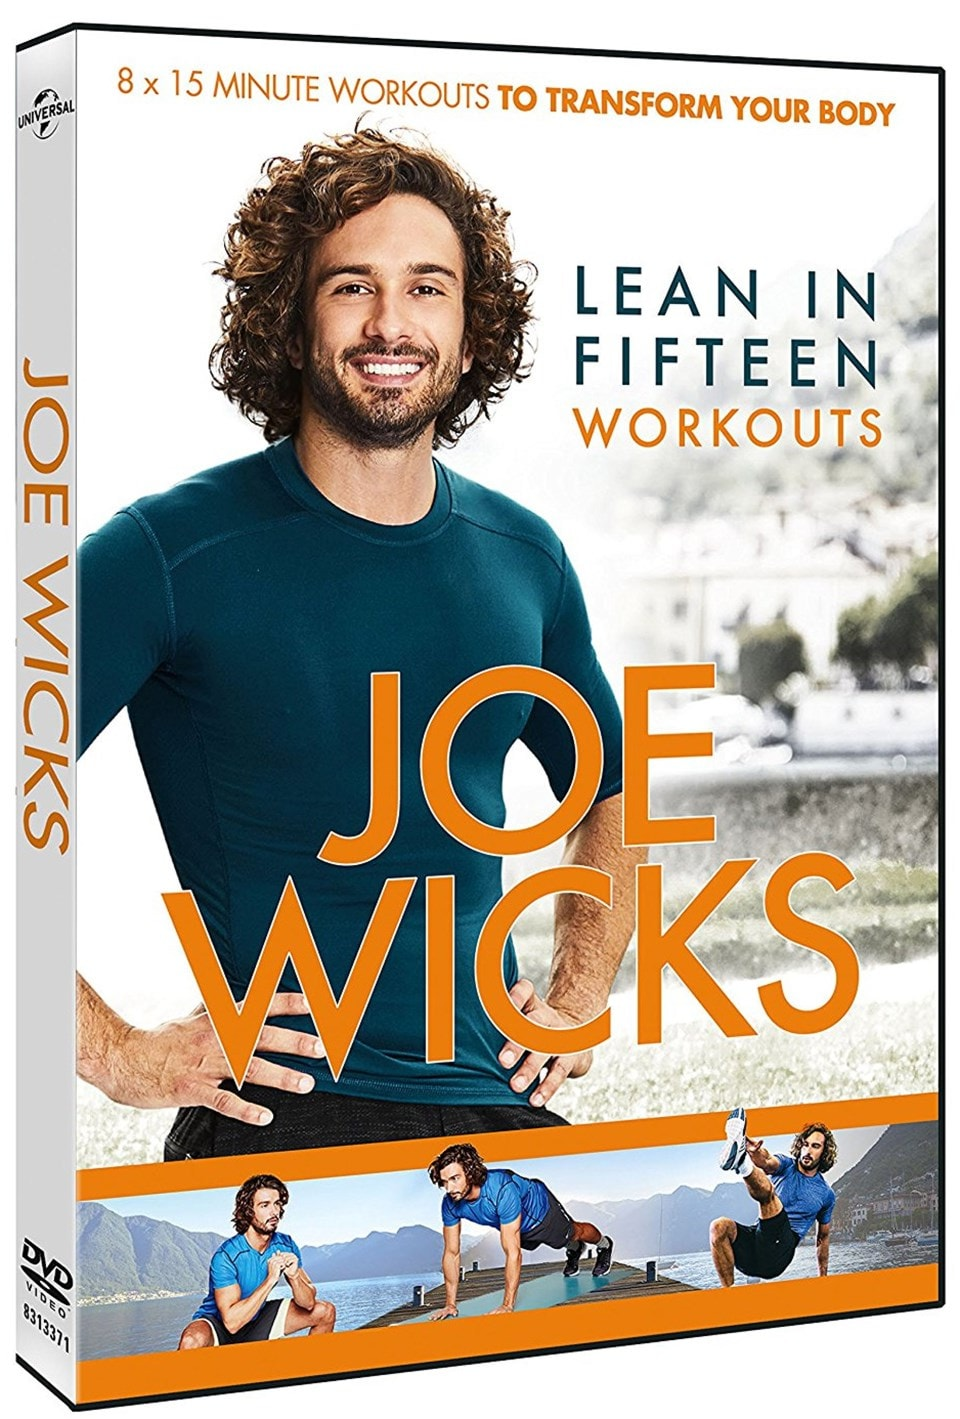 Joe Wicks - Lean in 15 Workouts - 2